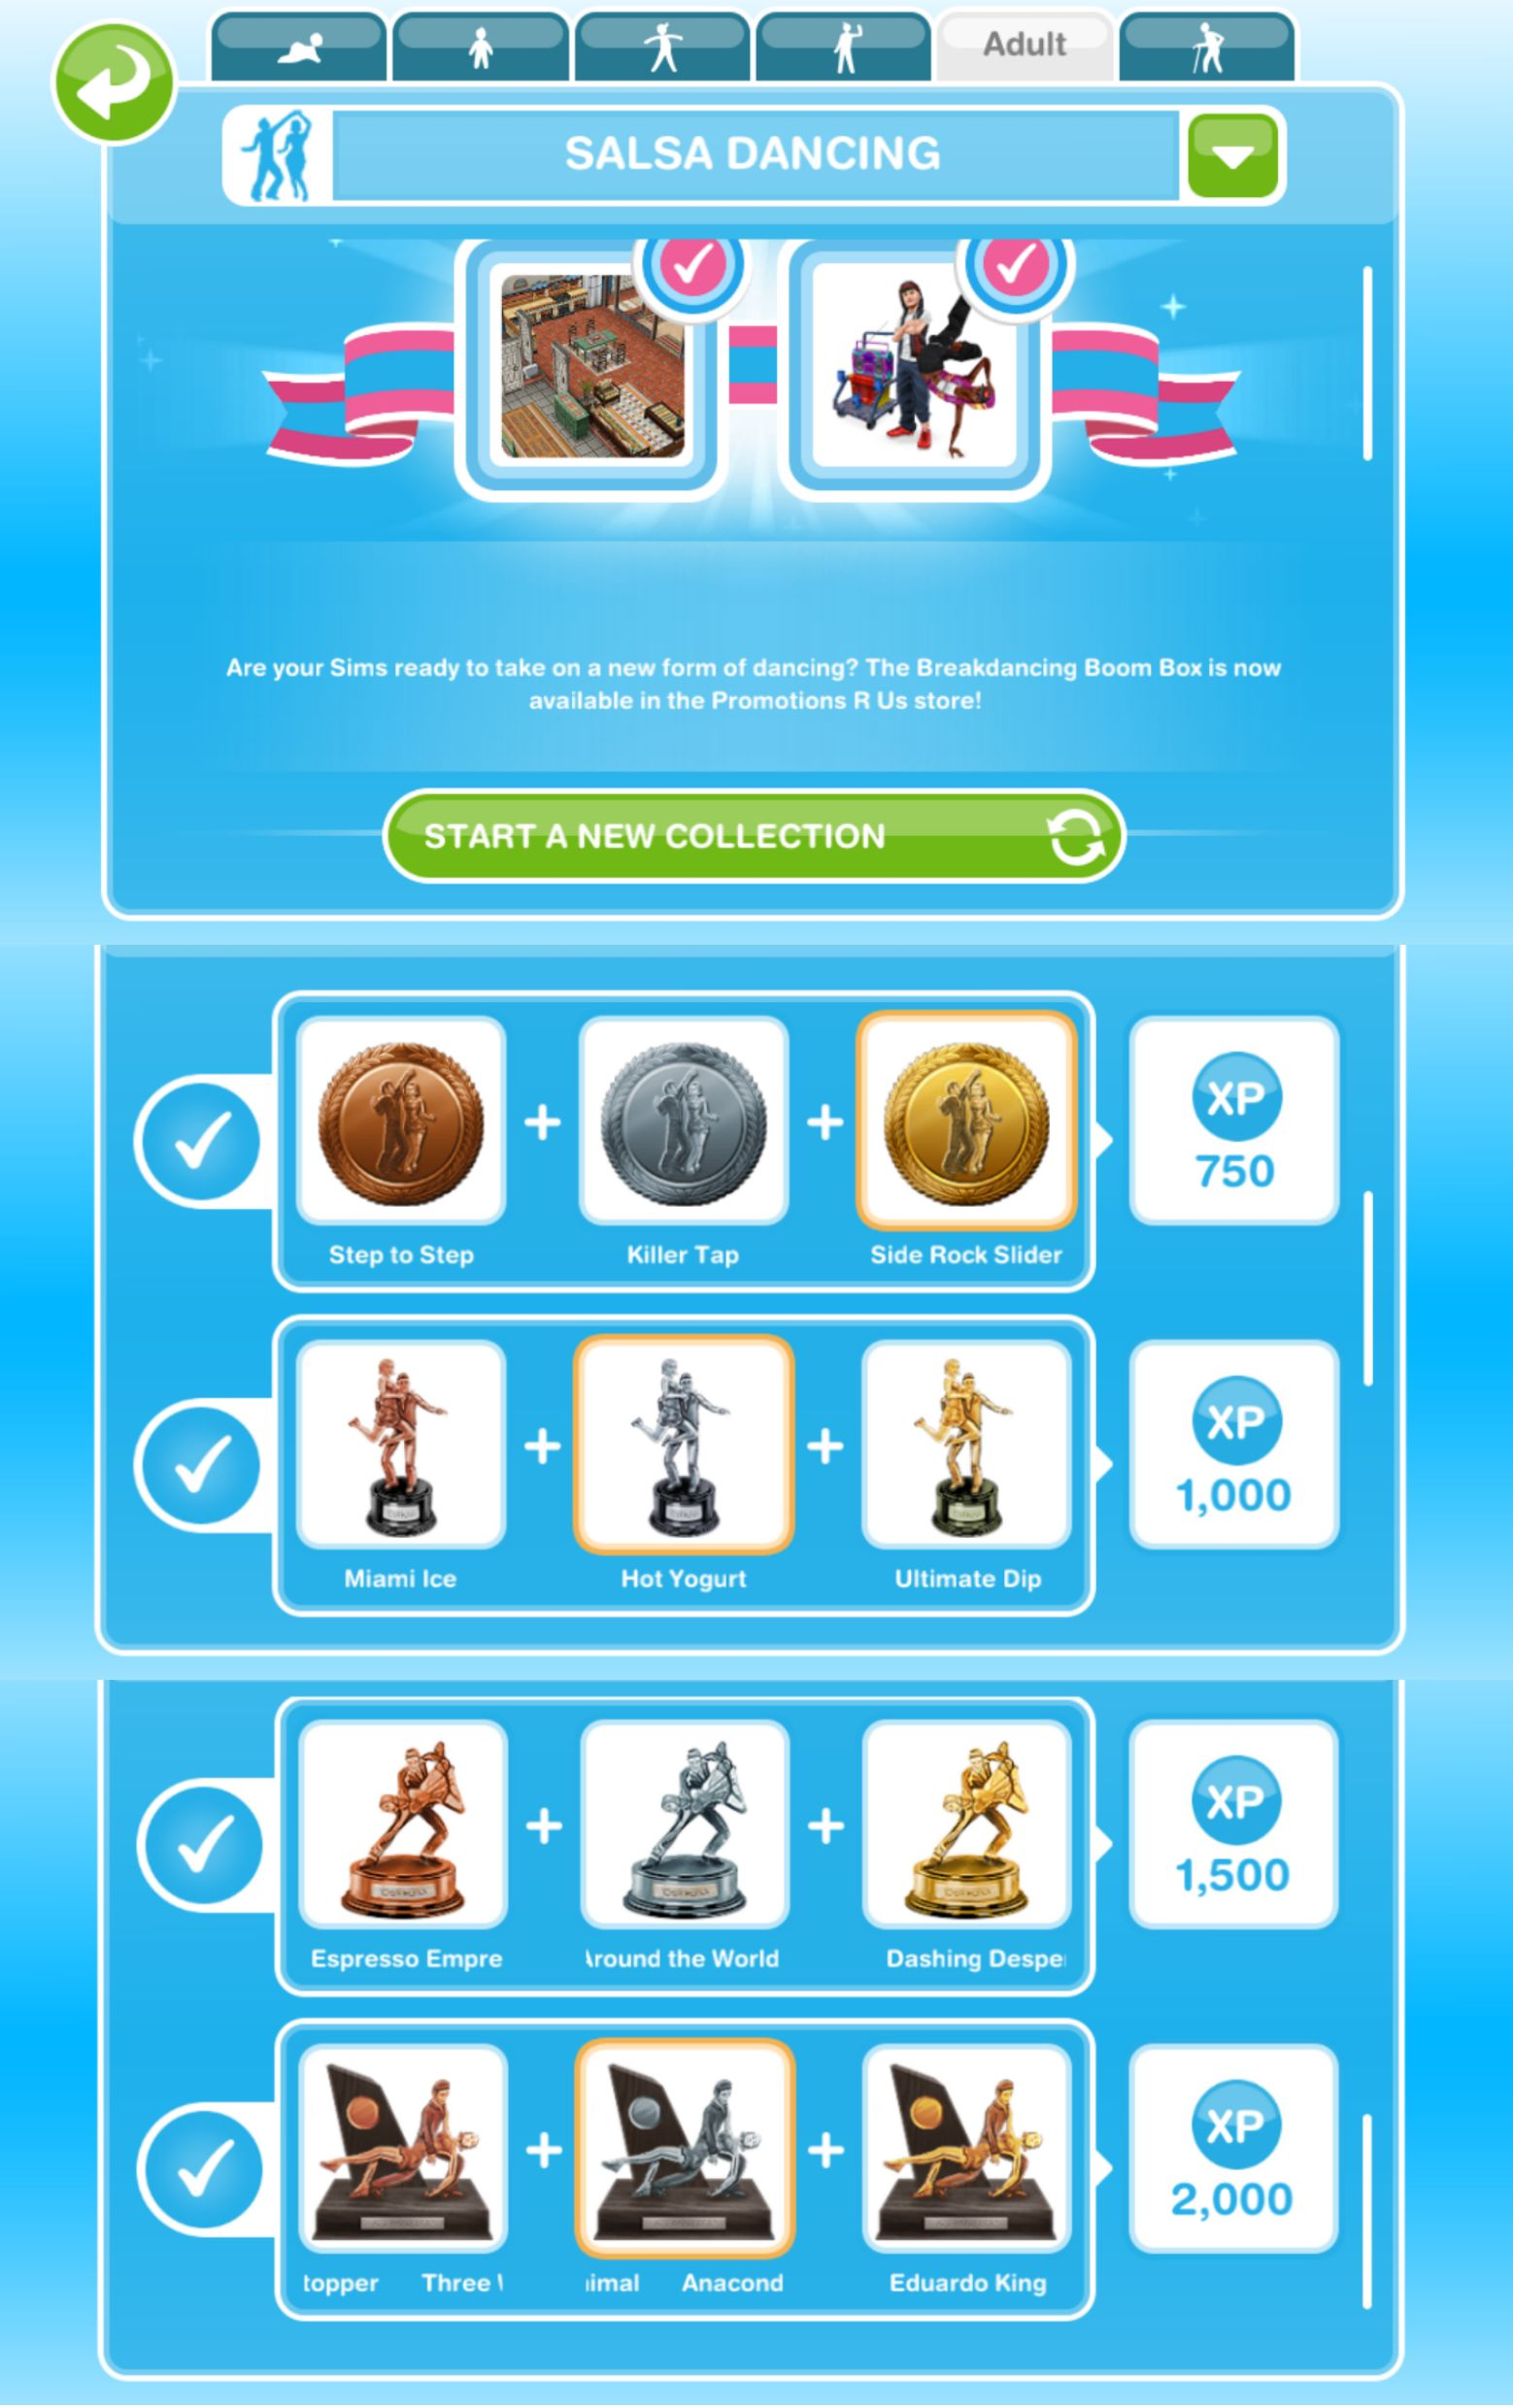 The Sims Freeplay Hobbies Salsa Dancing Girl Who Games Cool Dance Moves Step By Diagram You Will Earn Xps When Complete A Row In Hobby But To Collection Need Find All 12 Of Collectibles